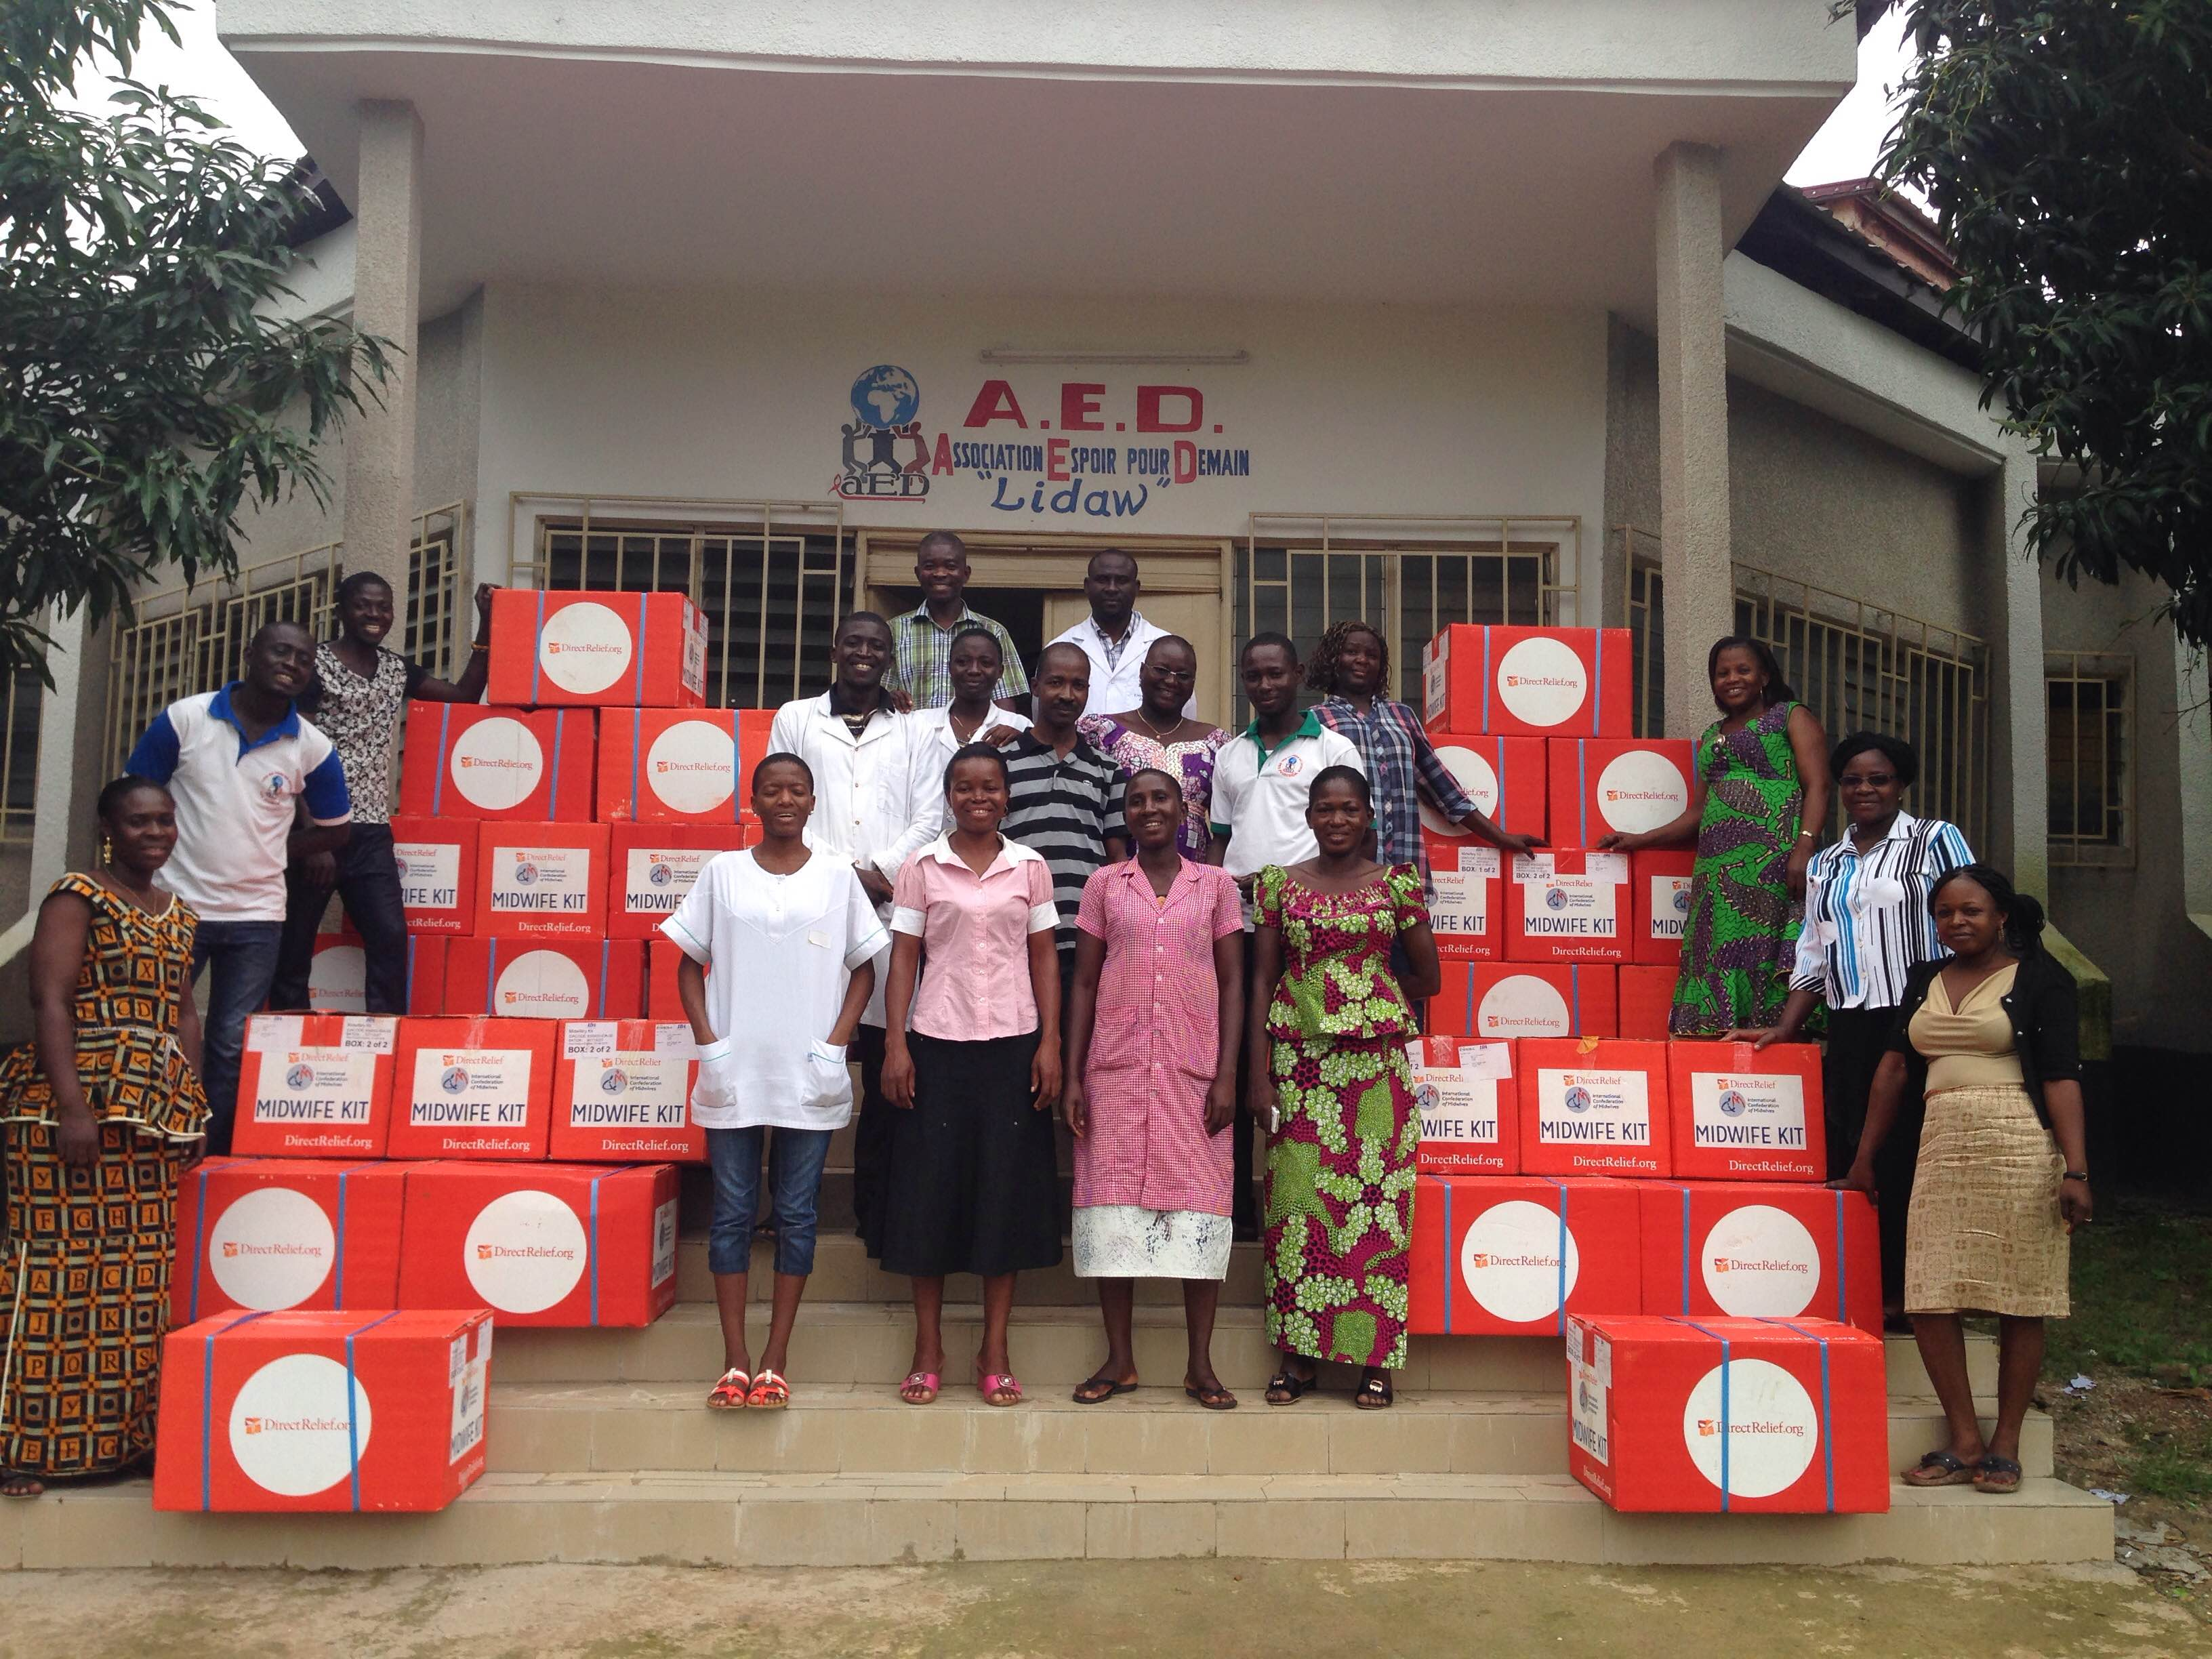 Direct Relief Midwife Kits - Hope Through Health